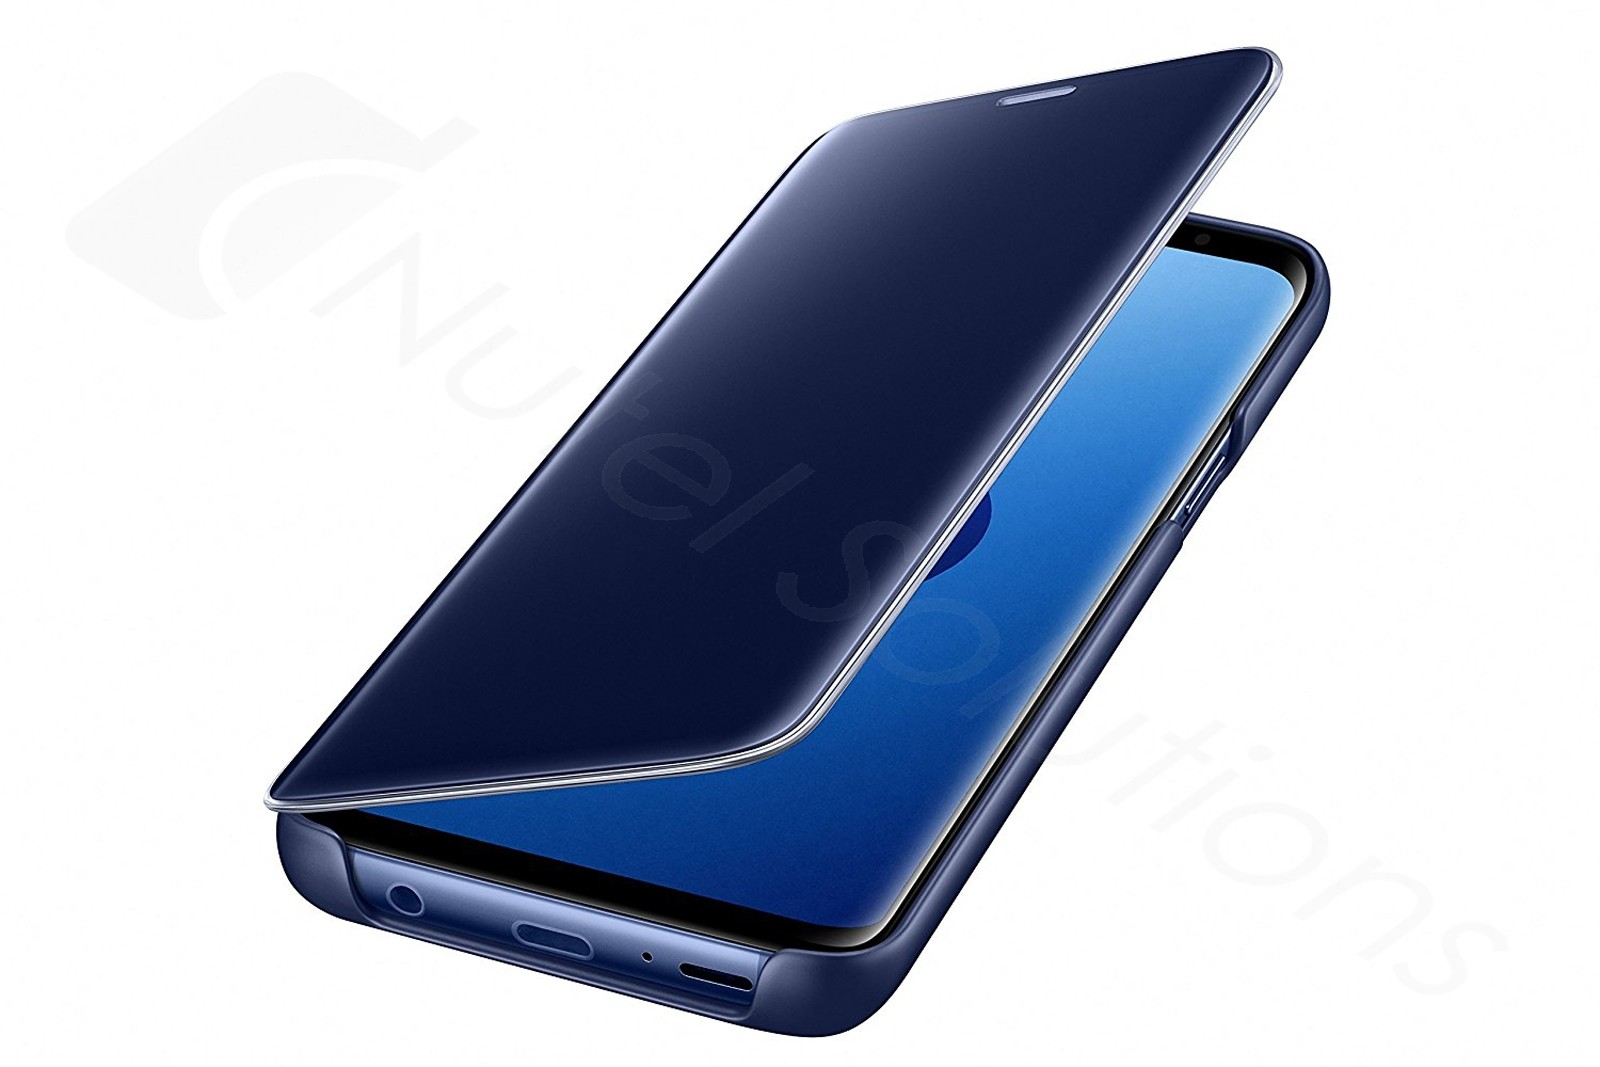 official samsung galaxy s9 blue clear view cover case. Black Bedroom Furniture Sets. Home Design Ideas